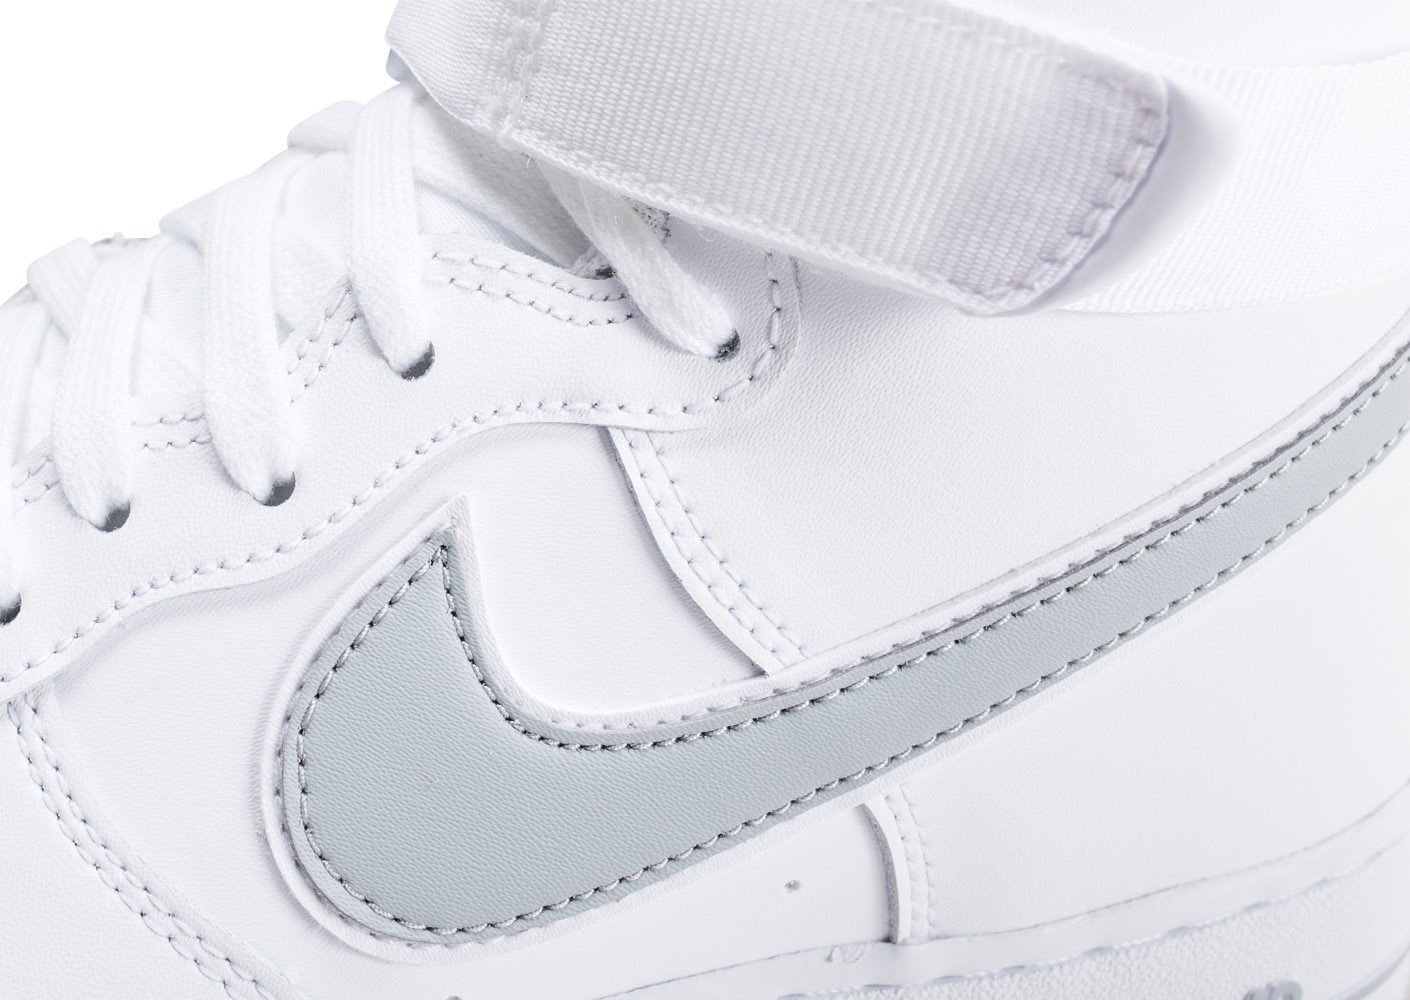 2ab55b7256b376 Nike Air Force 1 High blanche et argent - Chaussures Baskets homme ...